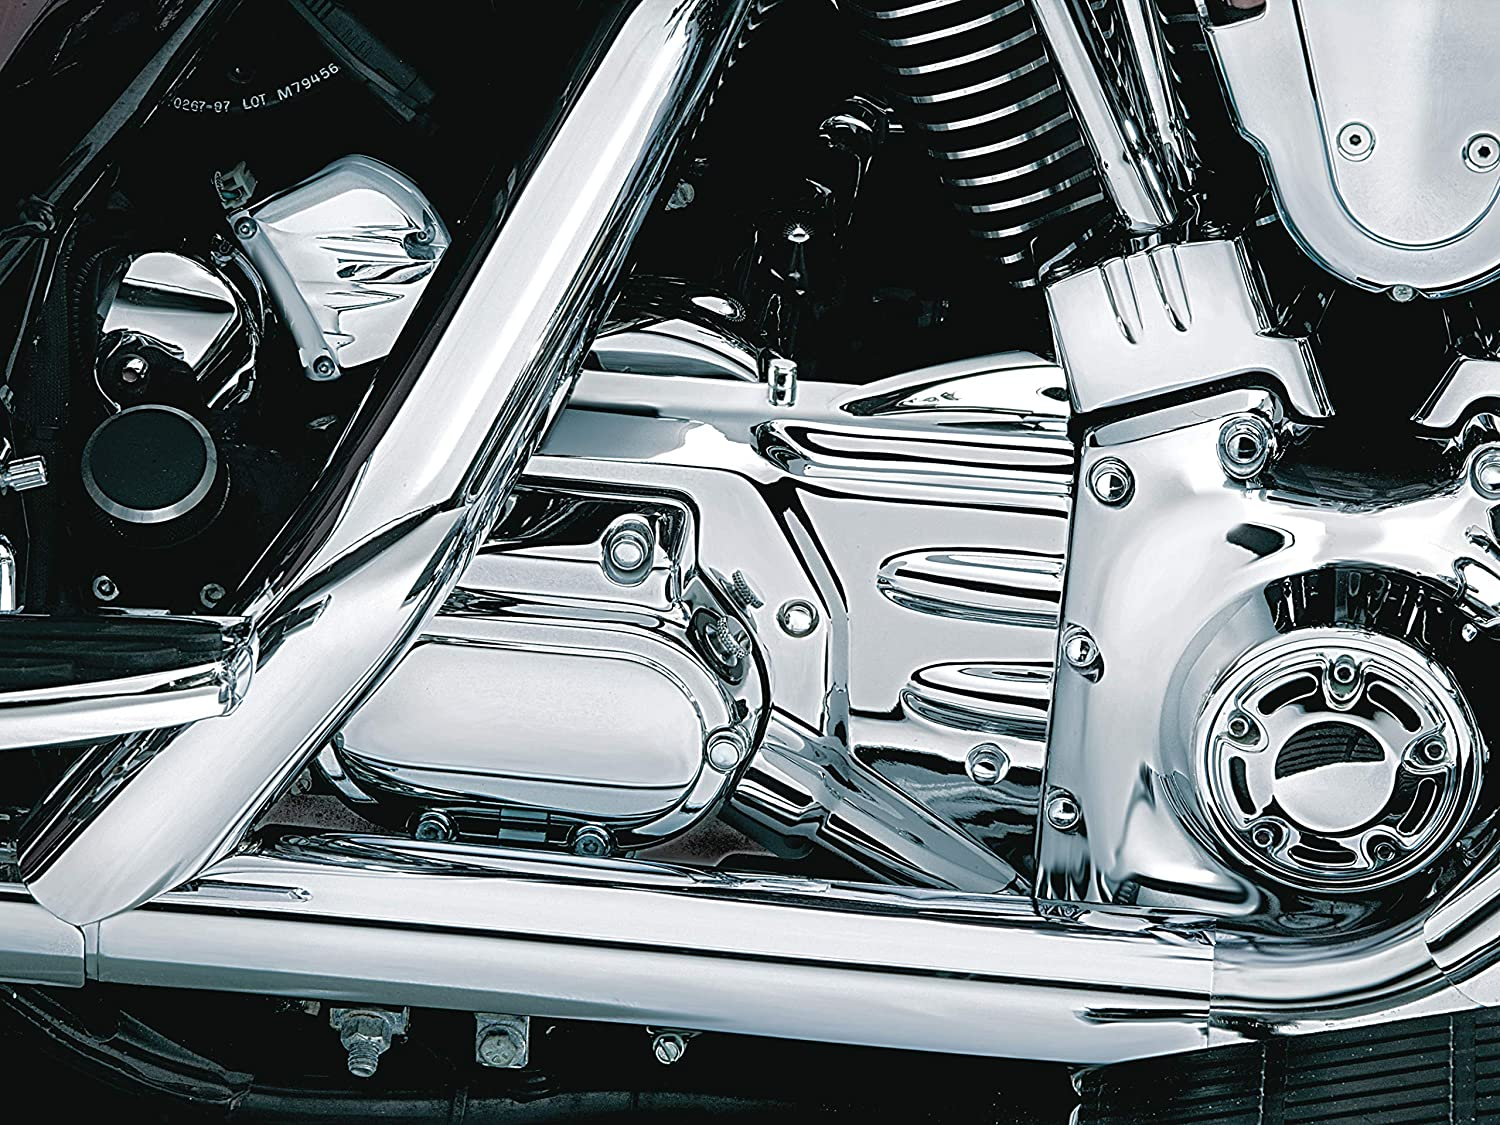 Kuryakyn 8209 Oil Line Cover and Transmission Shroud//Covering for 1999-2001 Harley-Davidson Touring Motorcycles Chrome